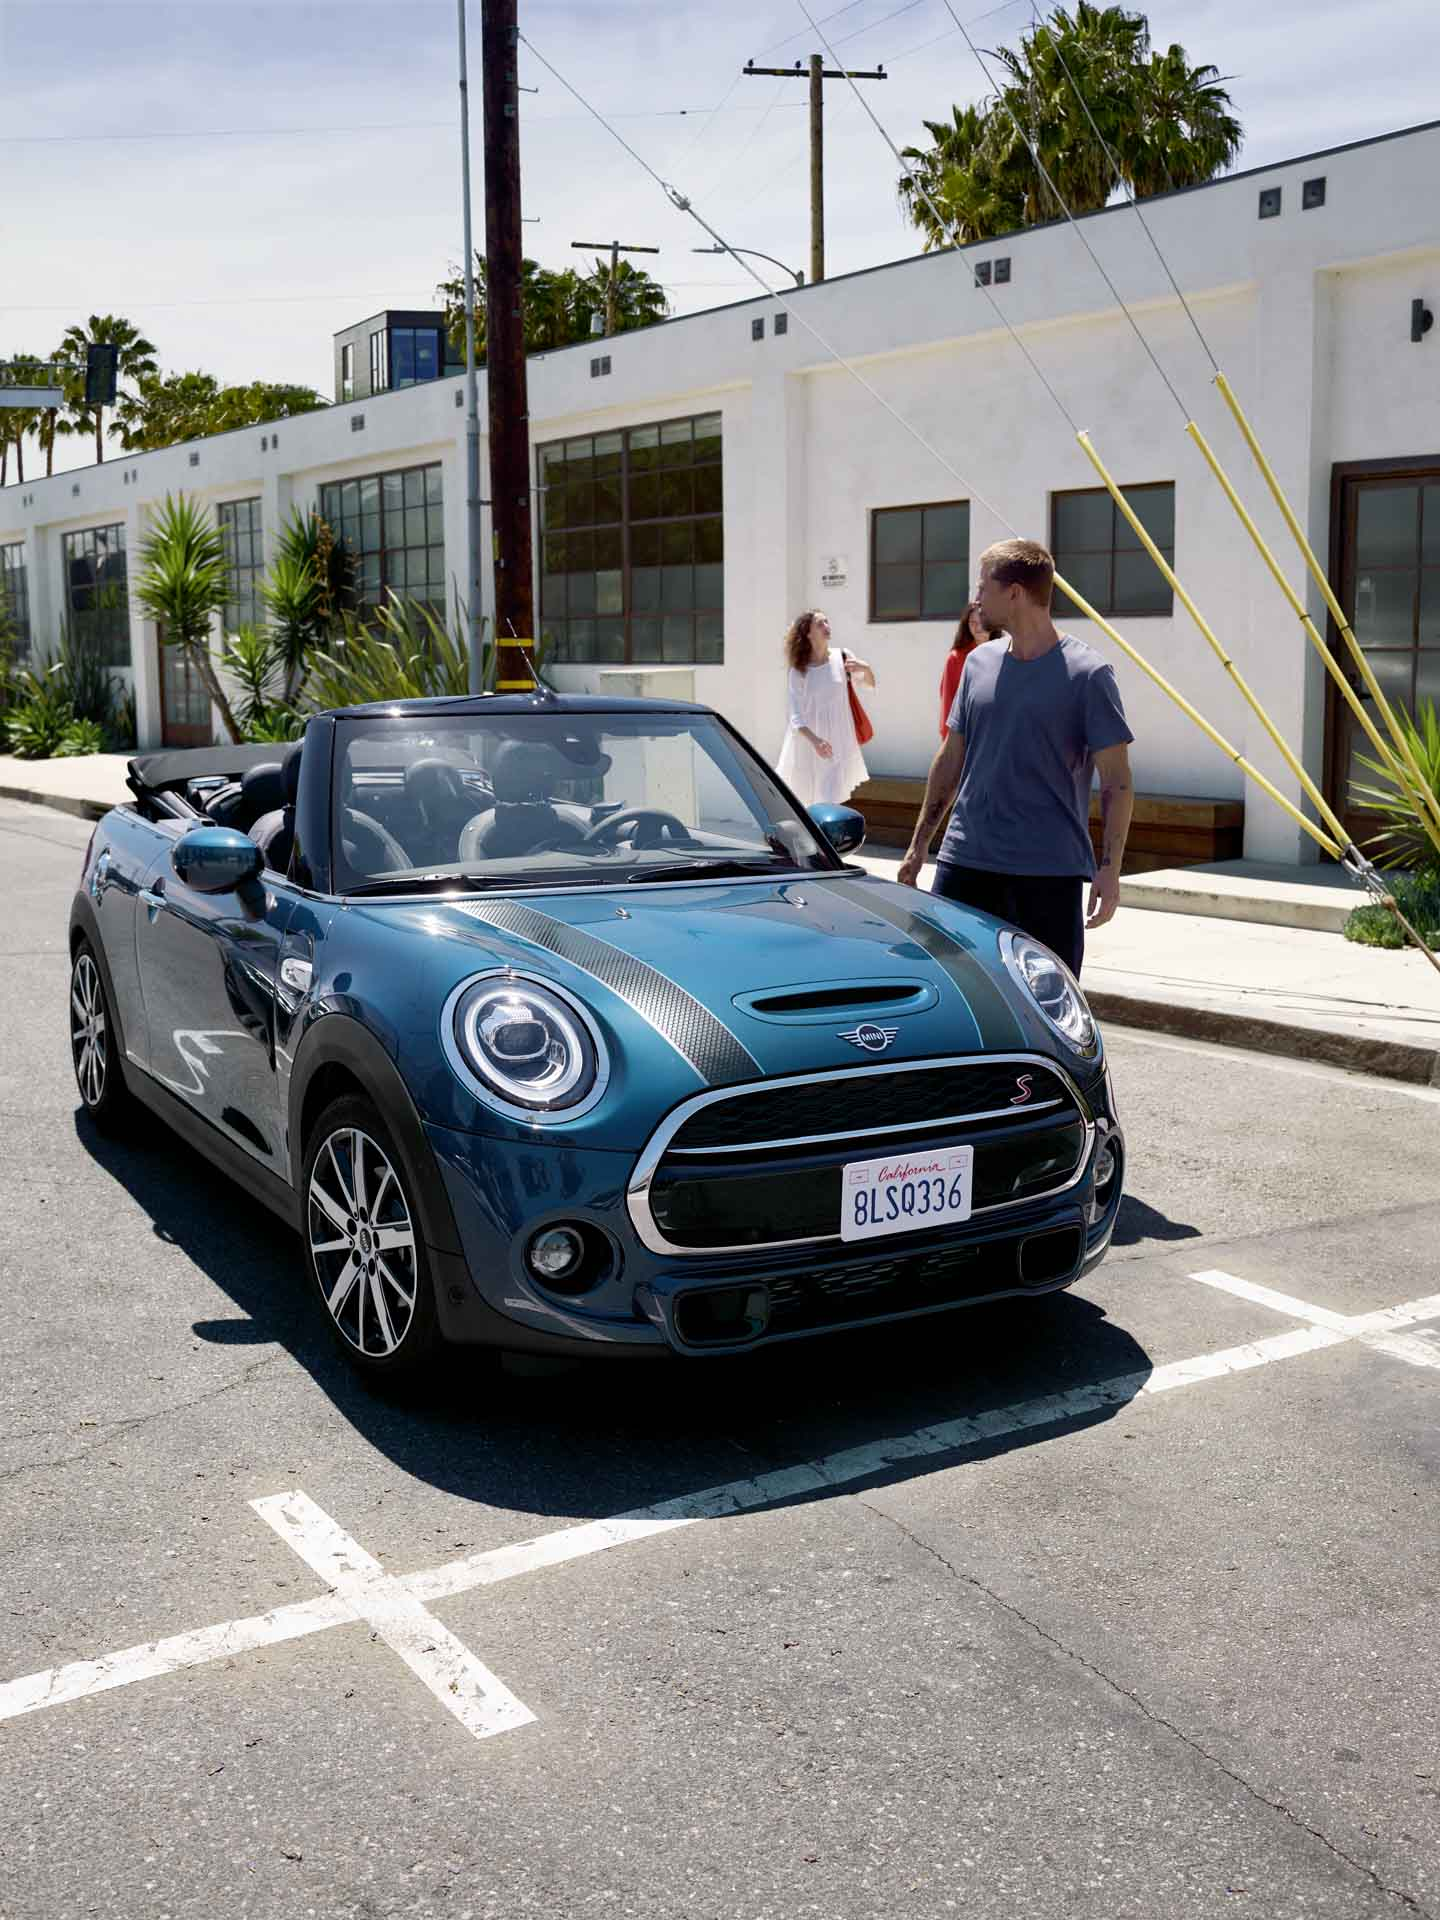 The new MINI Convertible Sidewalk Edition launched in India.